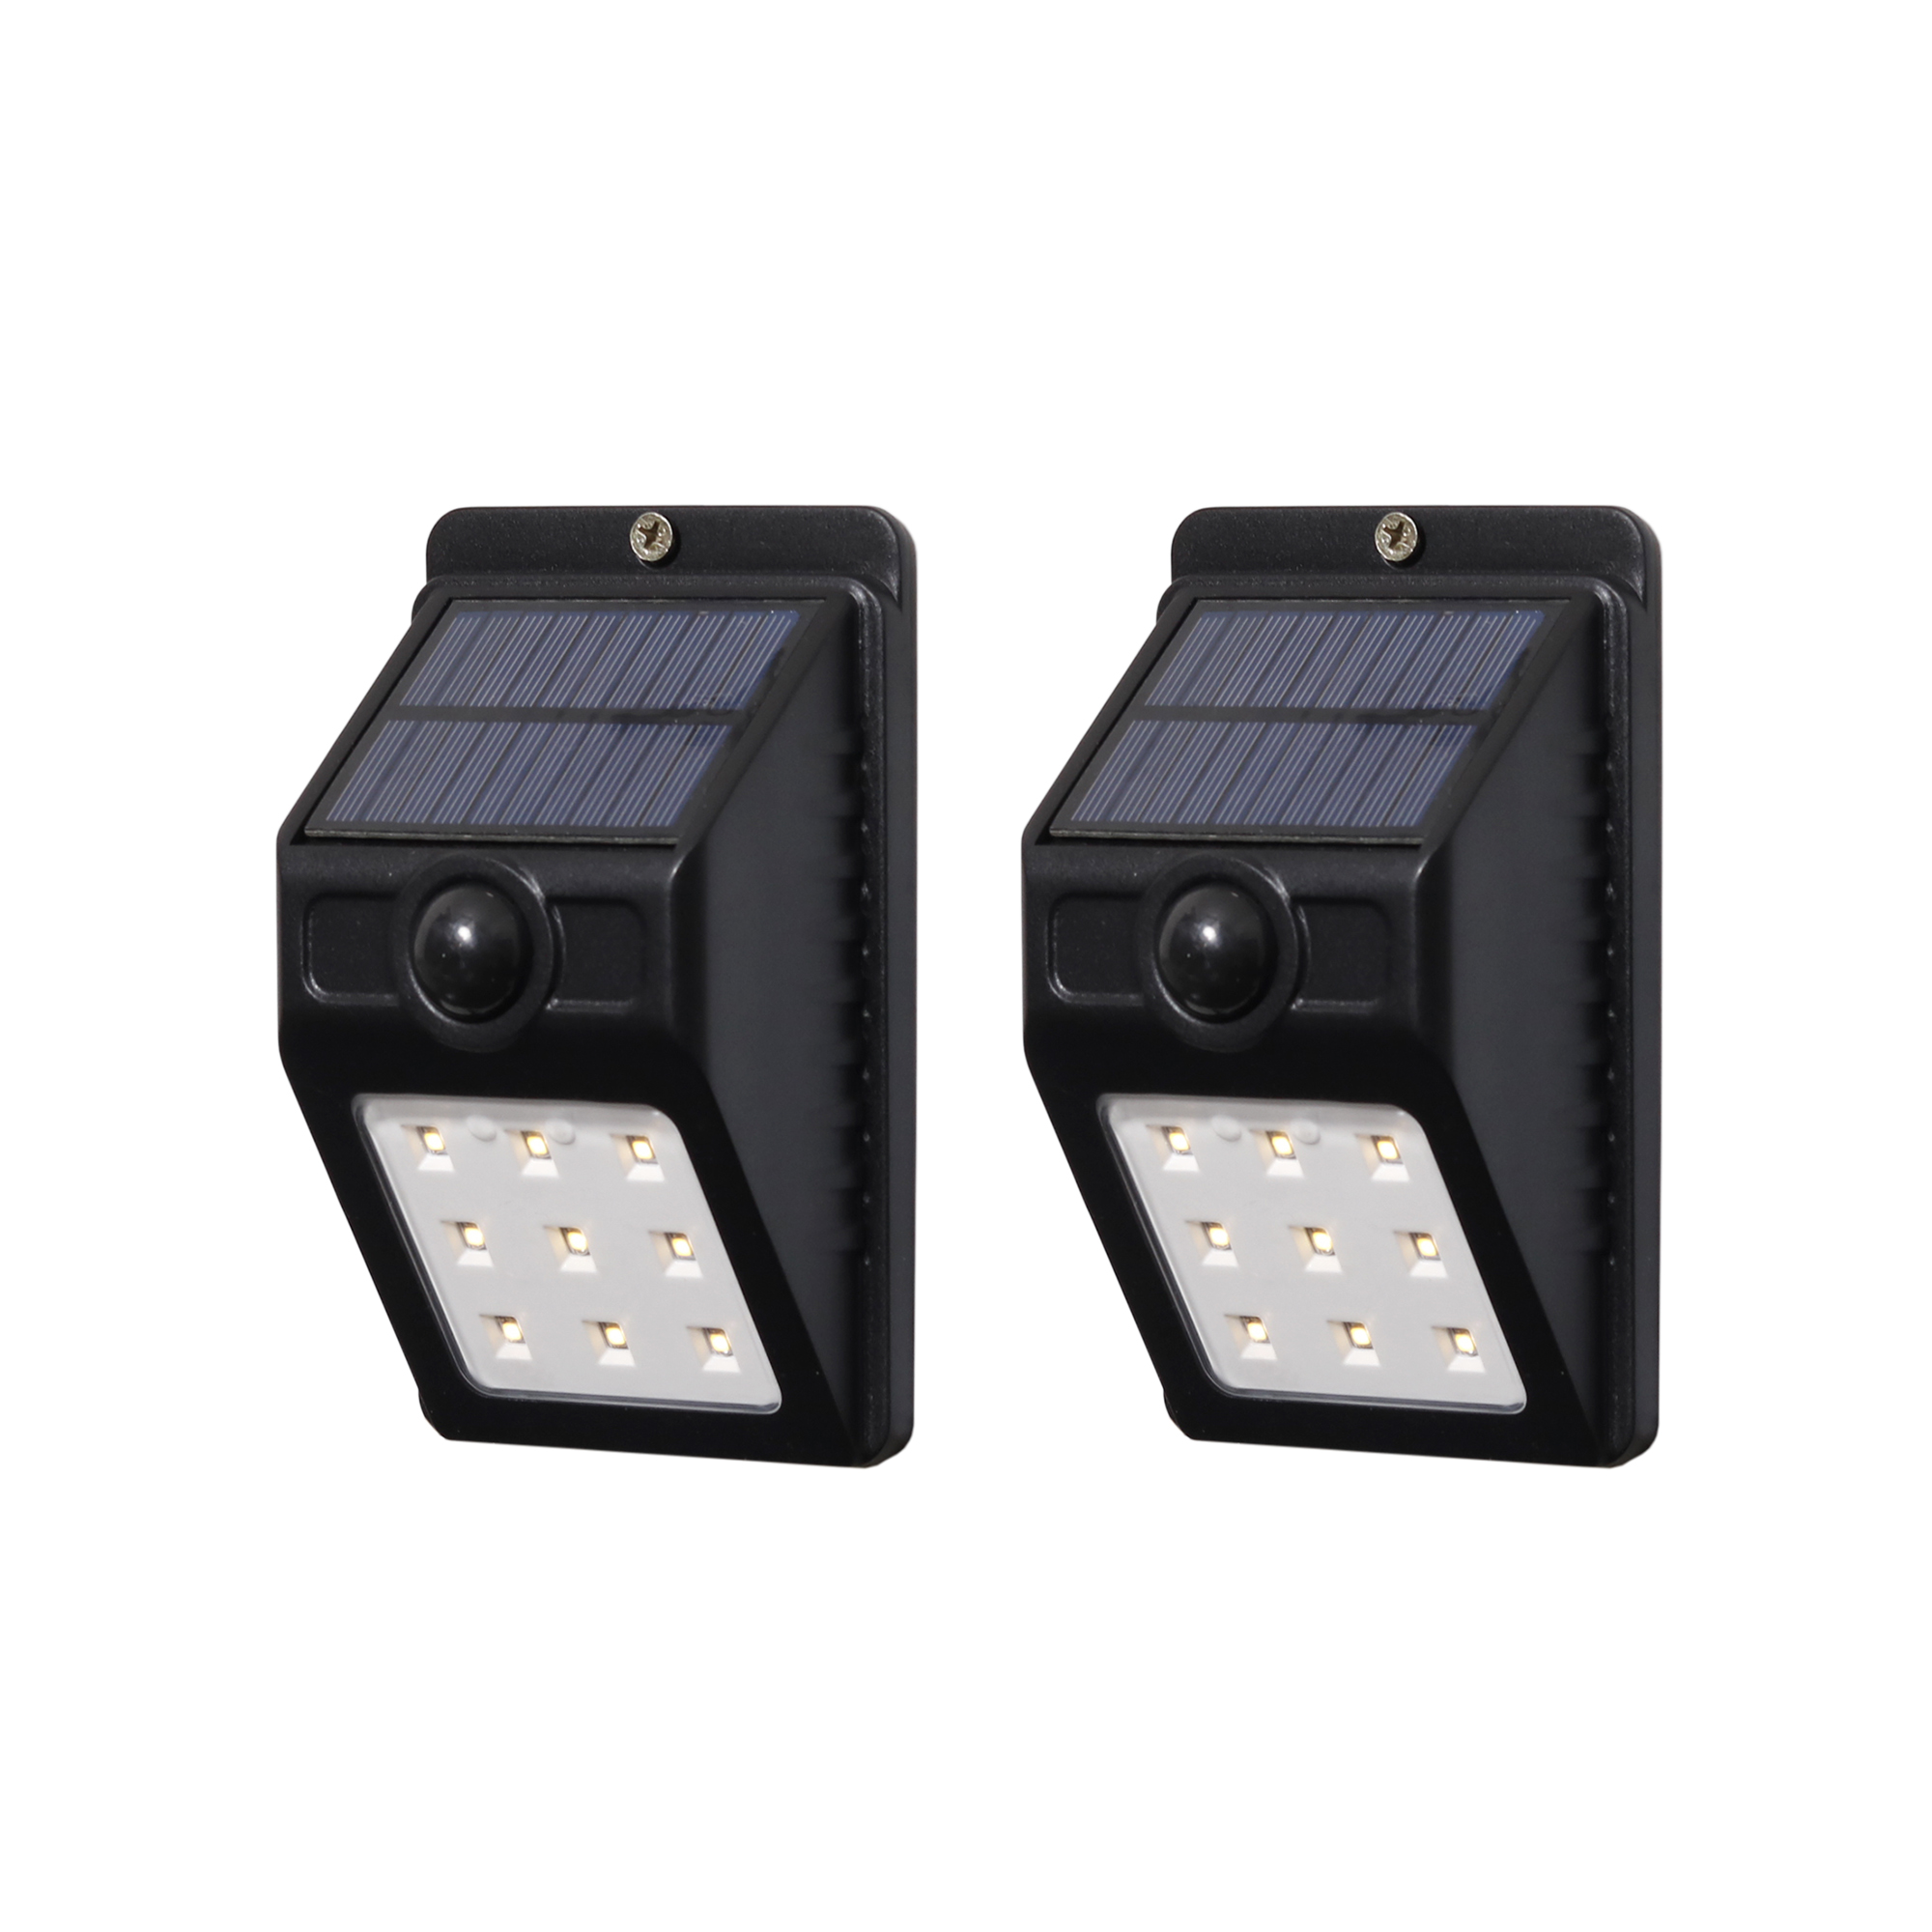 Westinghouse 100 Lumen Solar Motion Activated Lights Black Finish 2PK by Quanxin Lighting & Electrical Corporation Limited